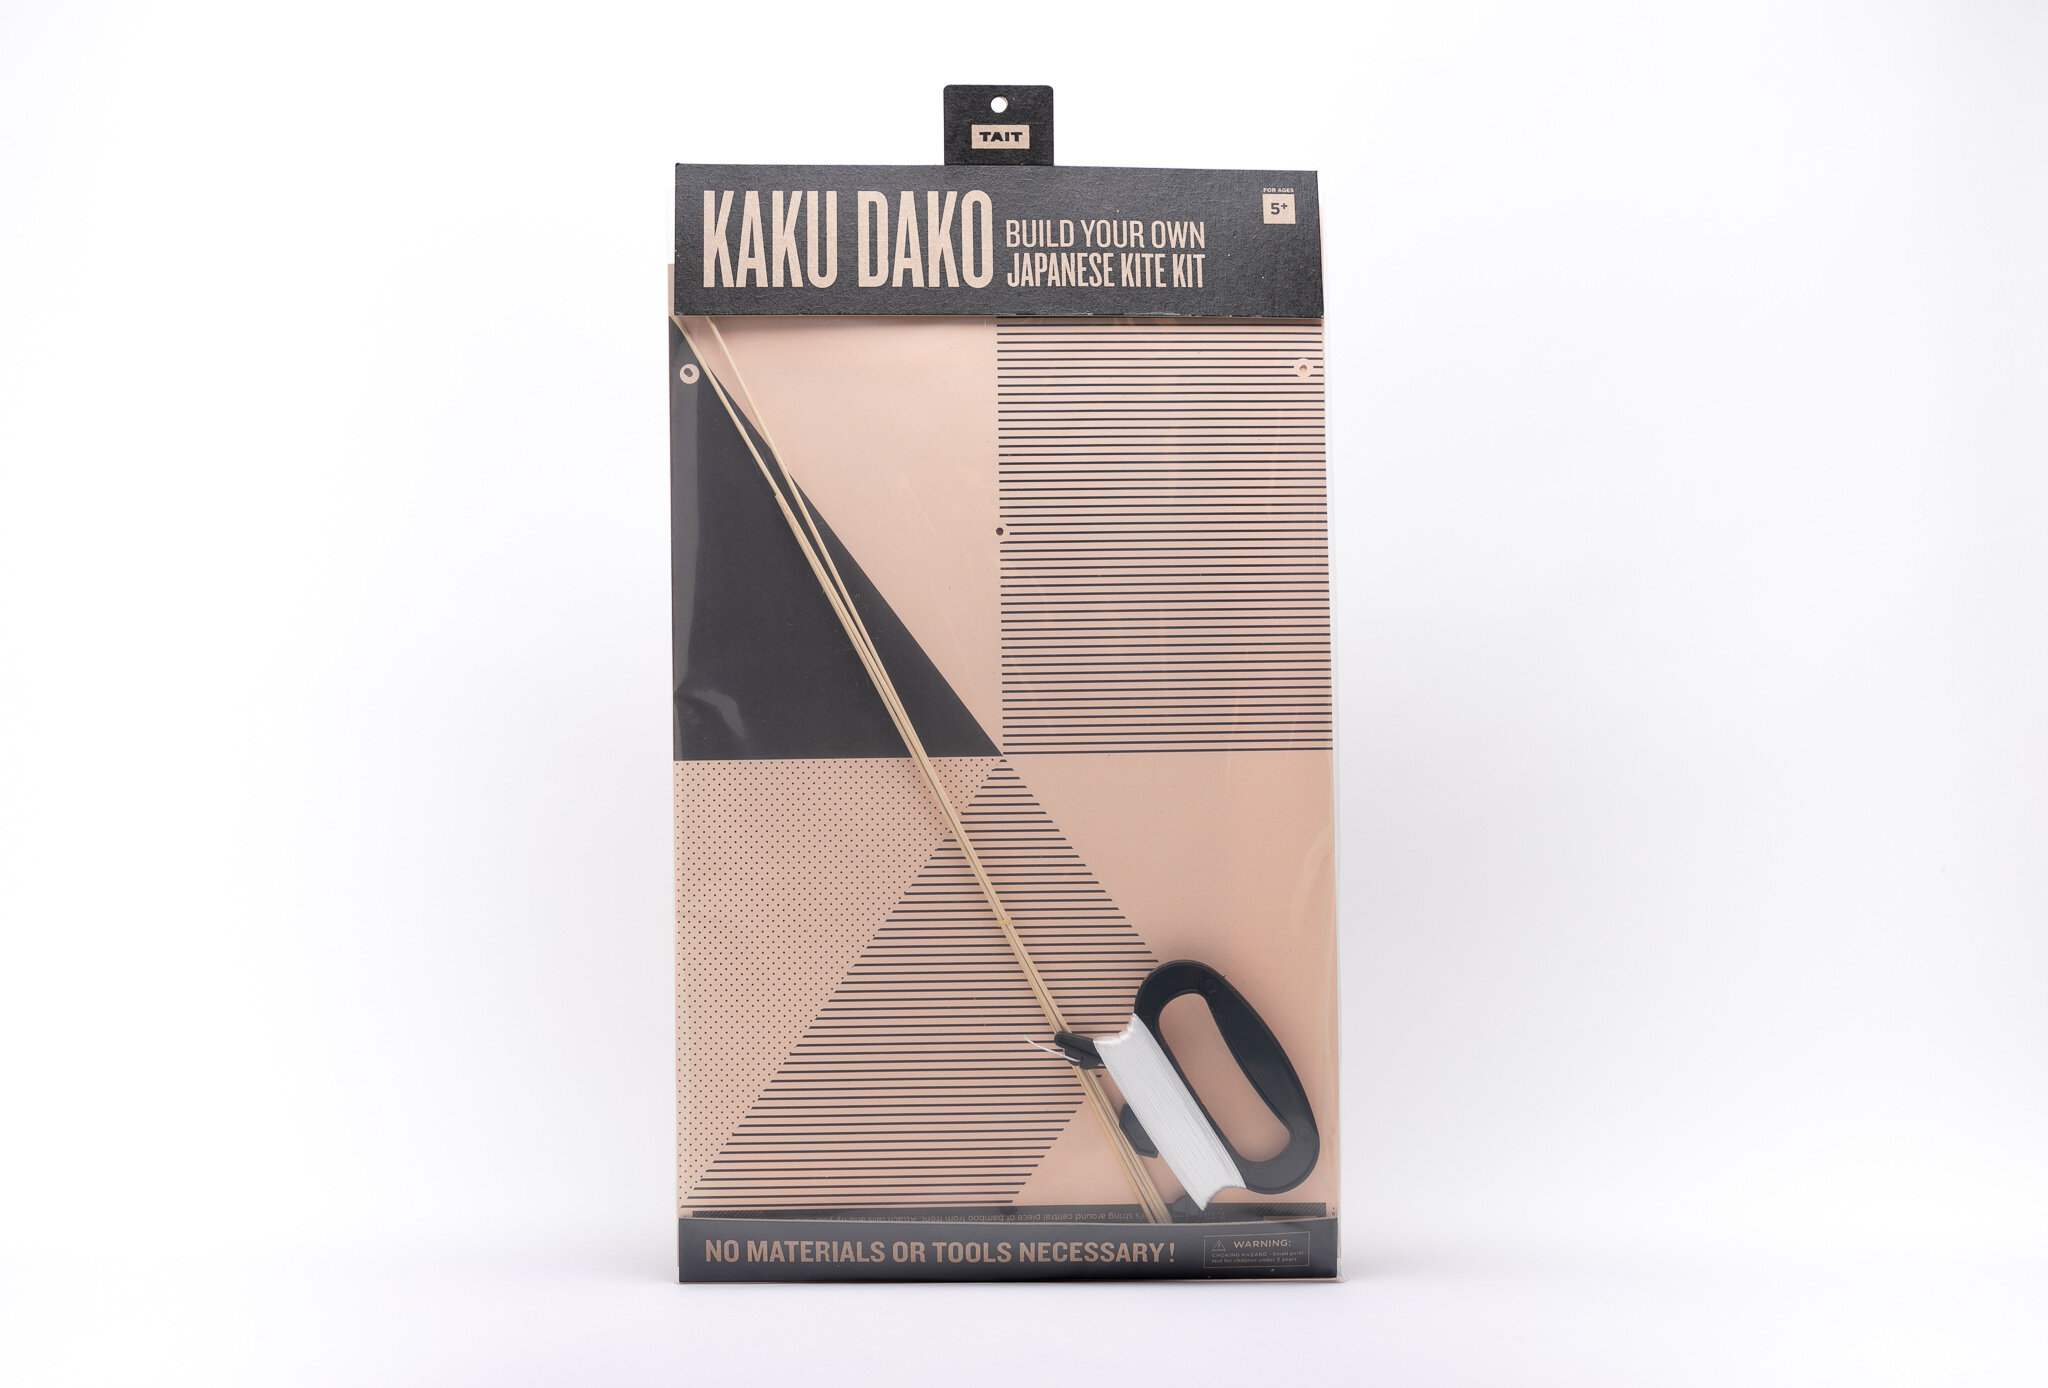 THE PACKAGING - –ASSEMBLED BY HAND–Each DIY Kite Kit comes with everything you need to build and fly a paper and bamboo kite kit in easy-to-transport packaging. Our kits are assembled by hand at our studio here in Detroit.